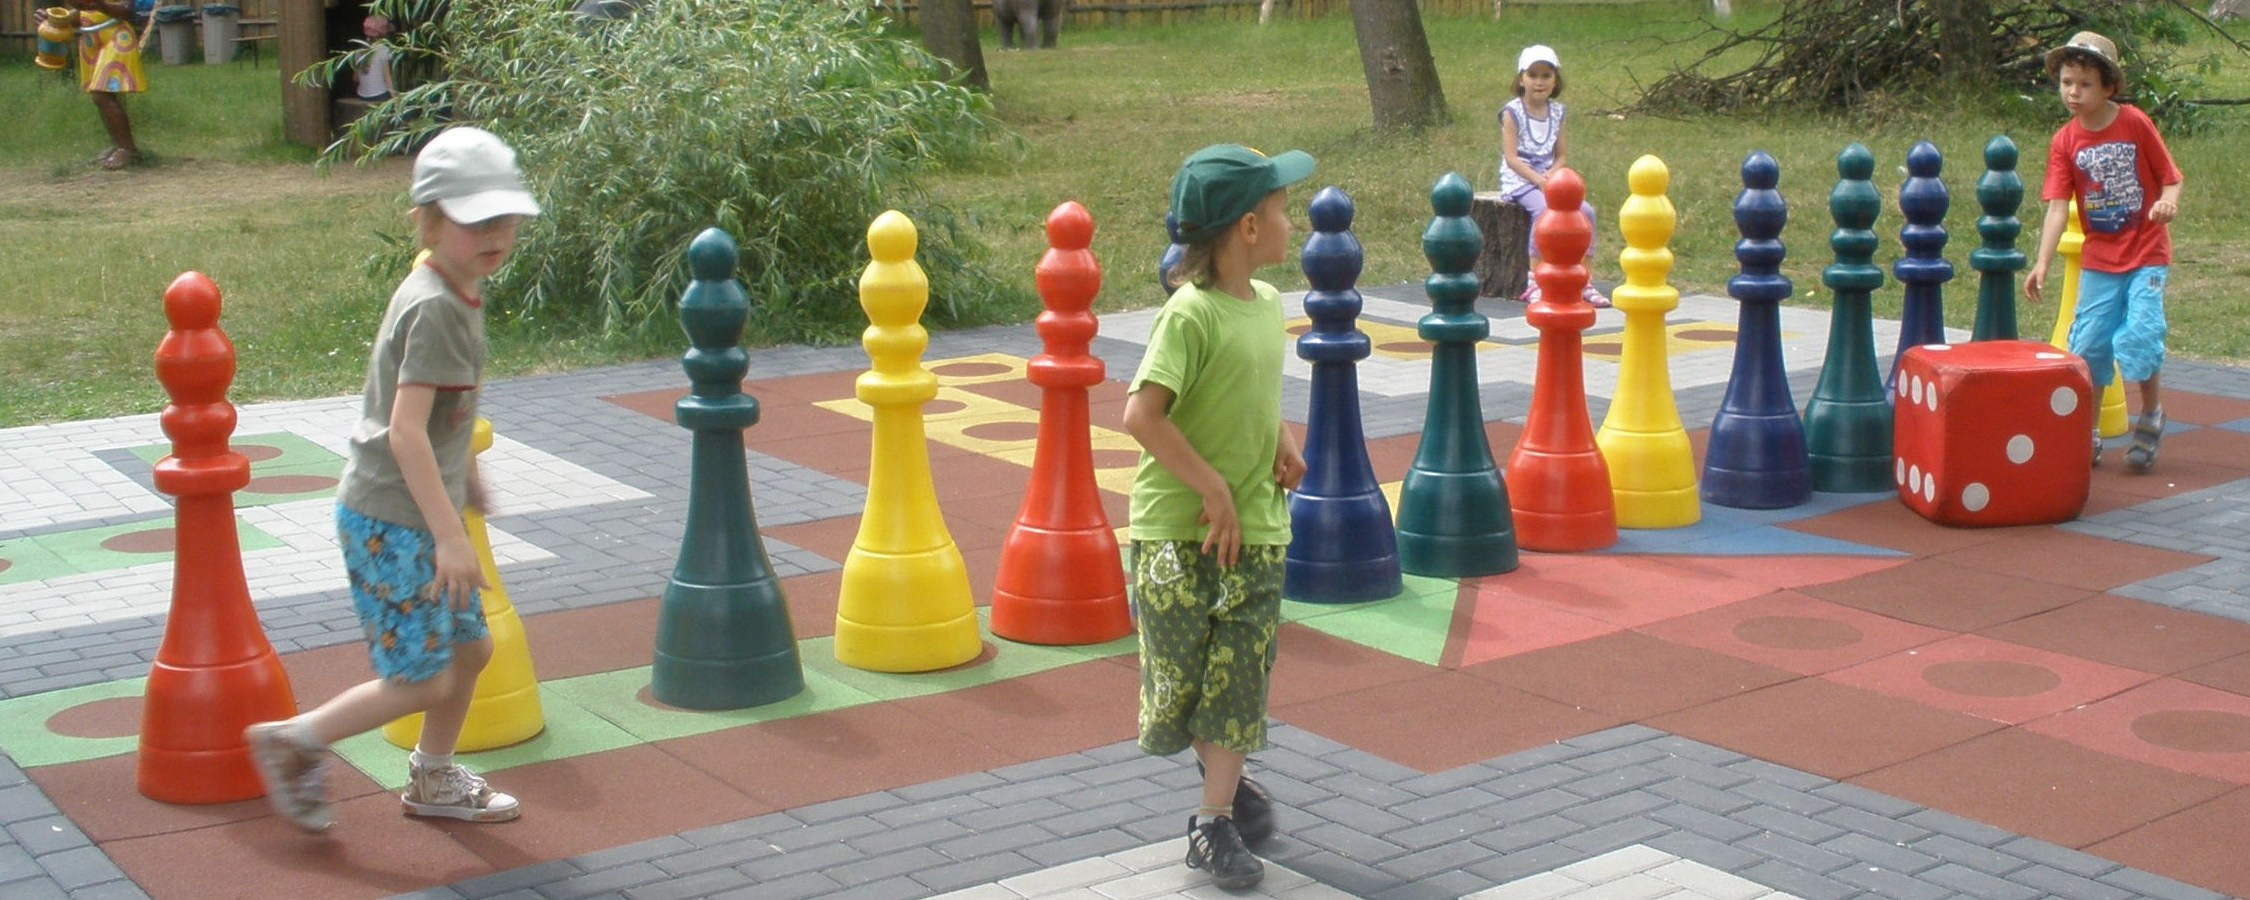 Sales offer for civic government- outdoor games and playgrounds